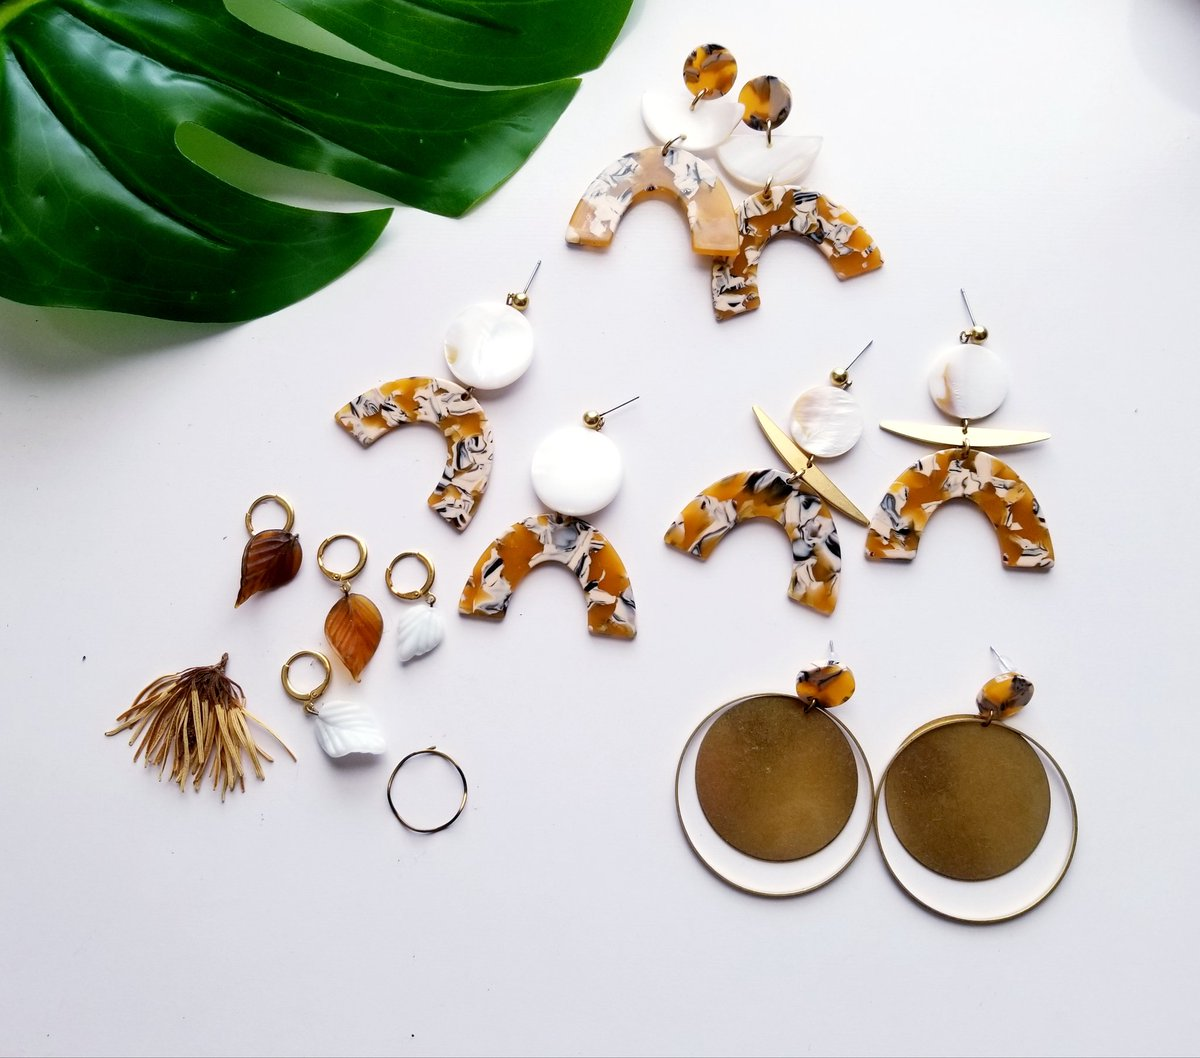 Hello!  Handcrafted jewelry using vintage or natural materials. 5 star rated on Etsy for 8 years http://Www.absynia.etsy.compic.twitter.com/WQTCBYMeOZ